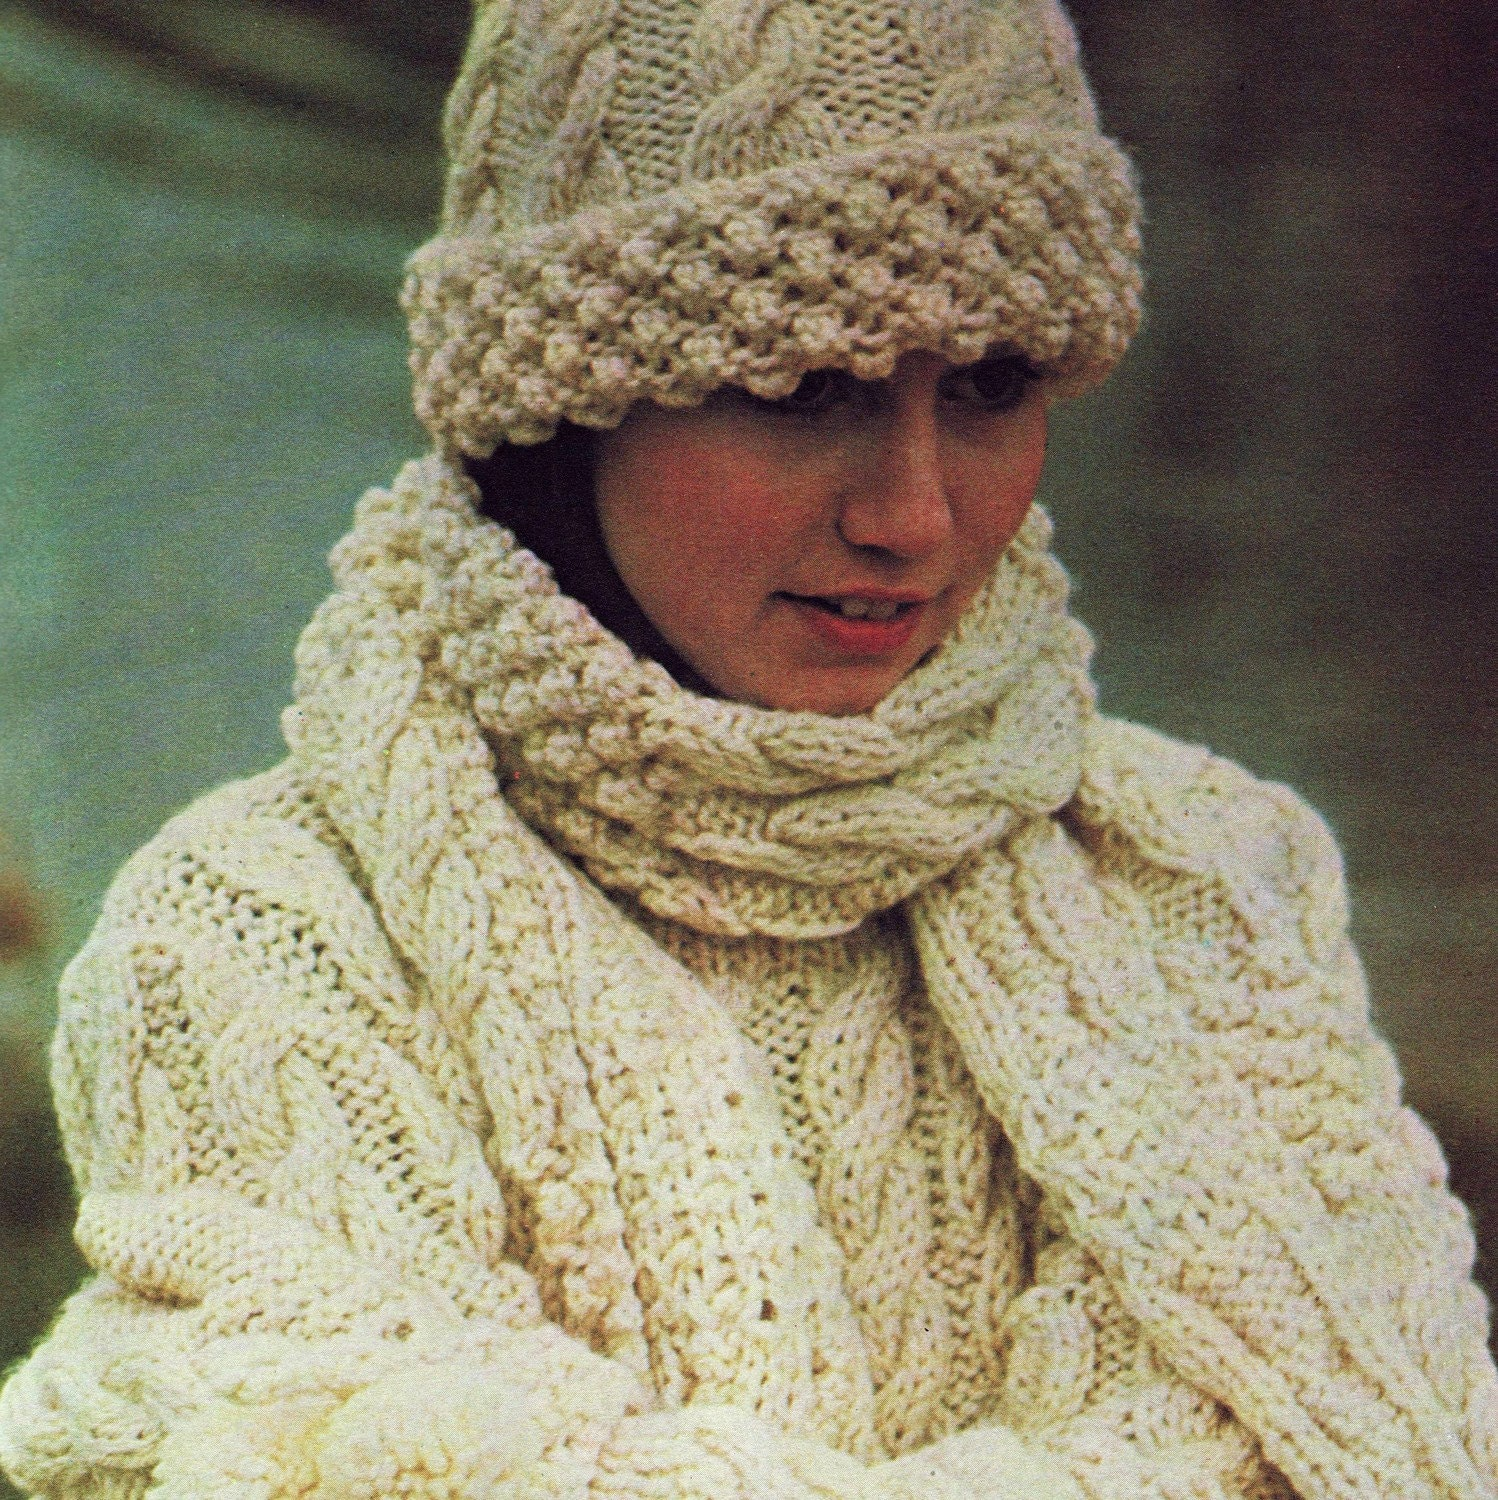 Hat Scarf Knitting Patterns Free : HAT SCARF KNITTING PATTERNS   Free Patterns